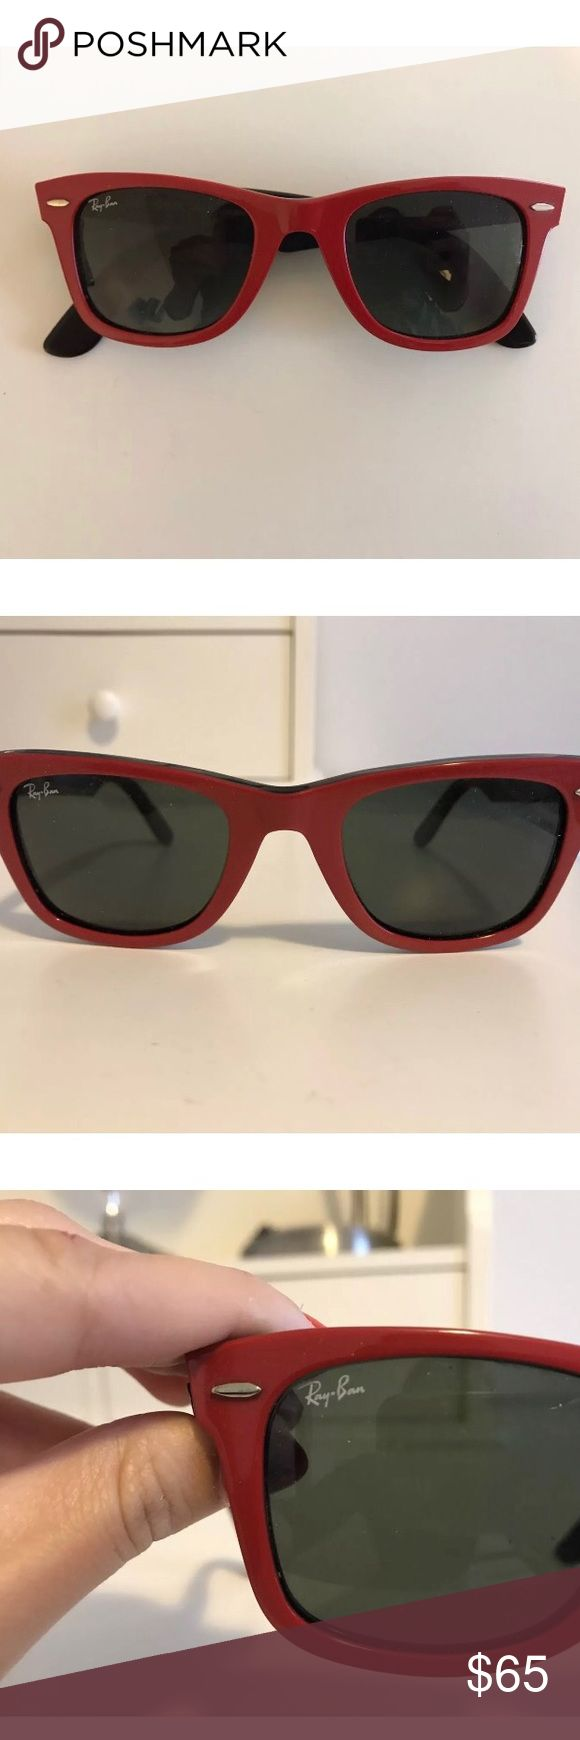 Ray Ban Wayfarer Great sunglasses in excellent condition. Hardly worn and barely any marks. ray ban Accessories Sunglasses